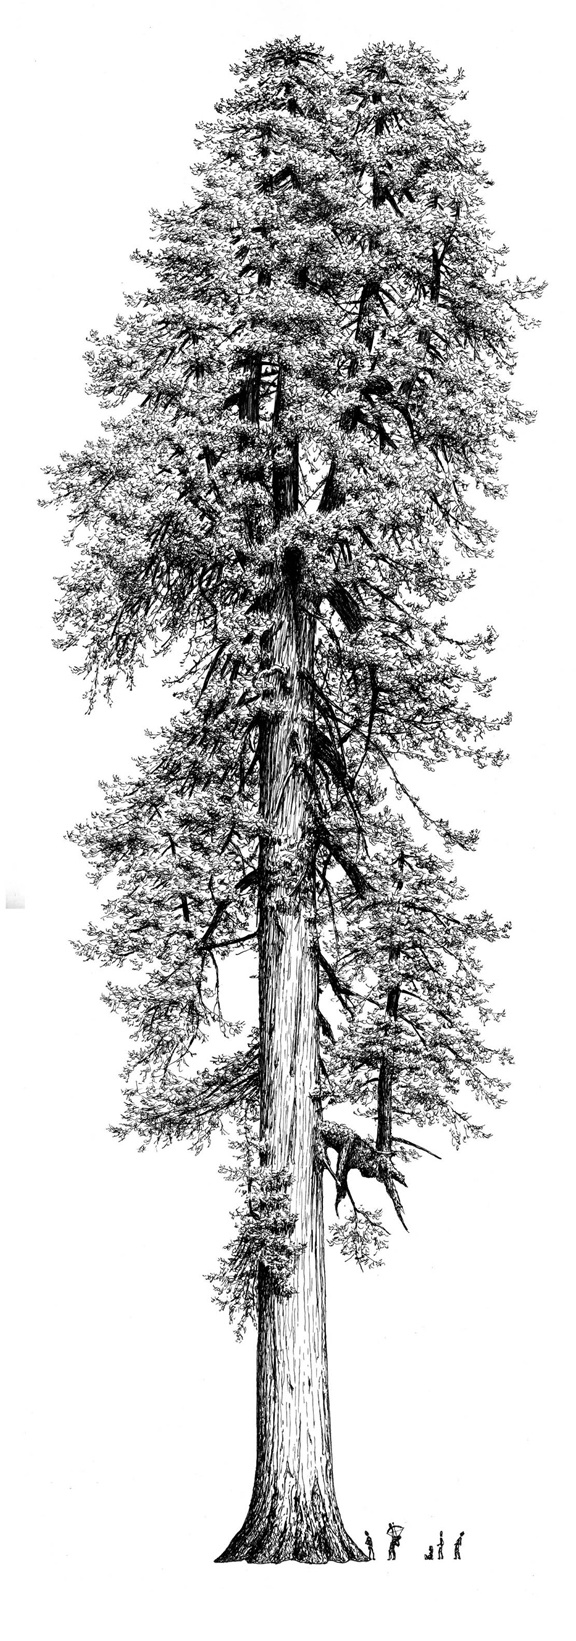 Love the correct scaling of the sizing (tree - people (bear)).